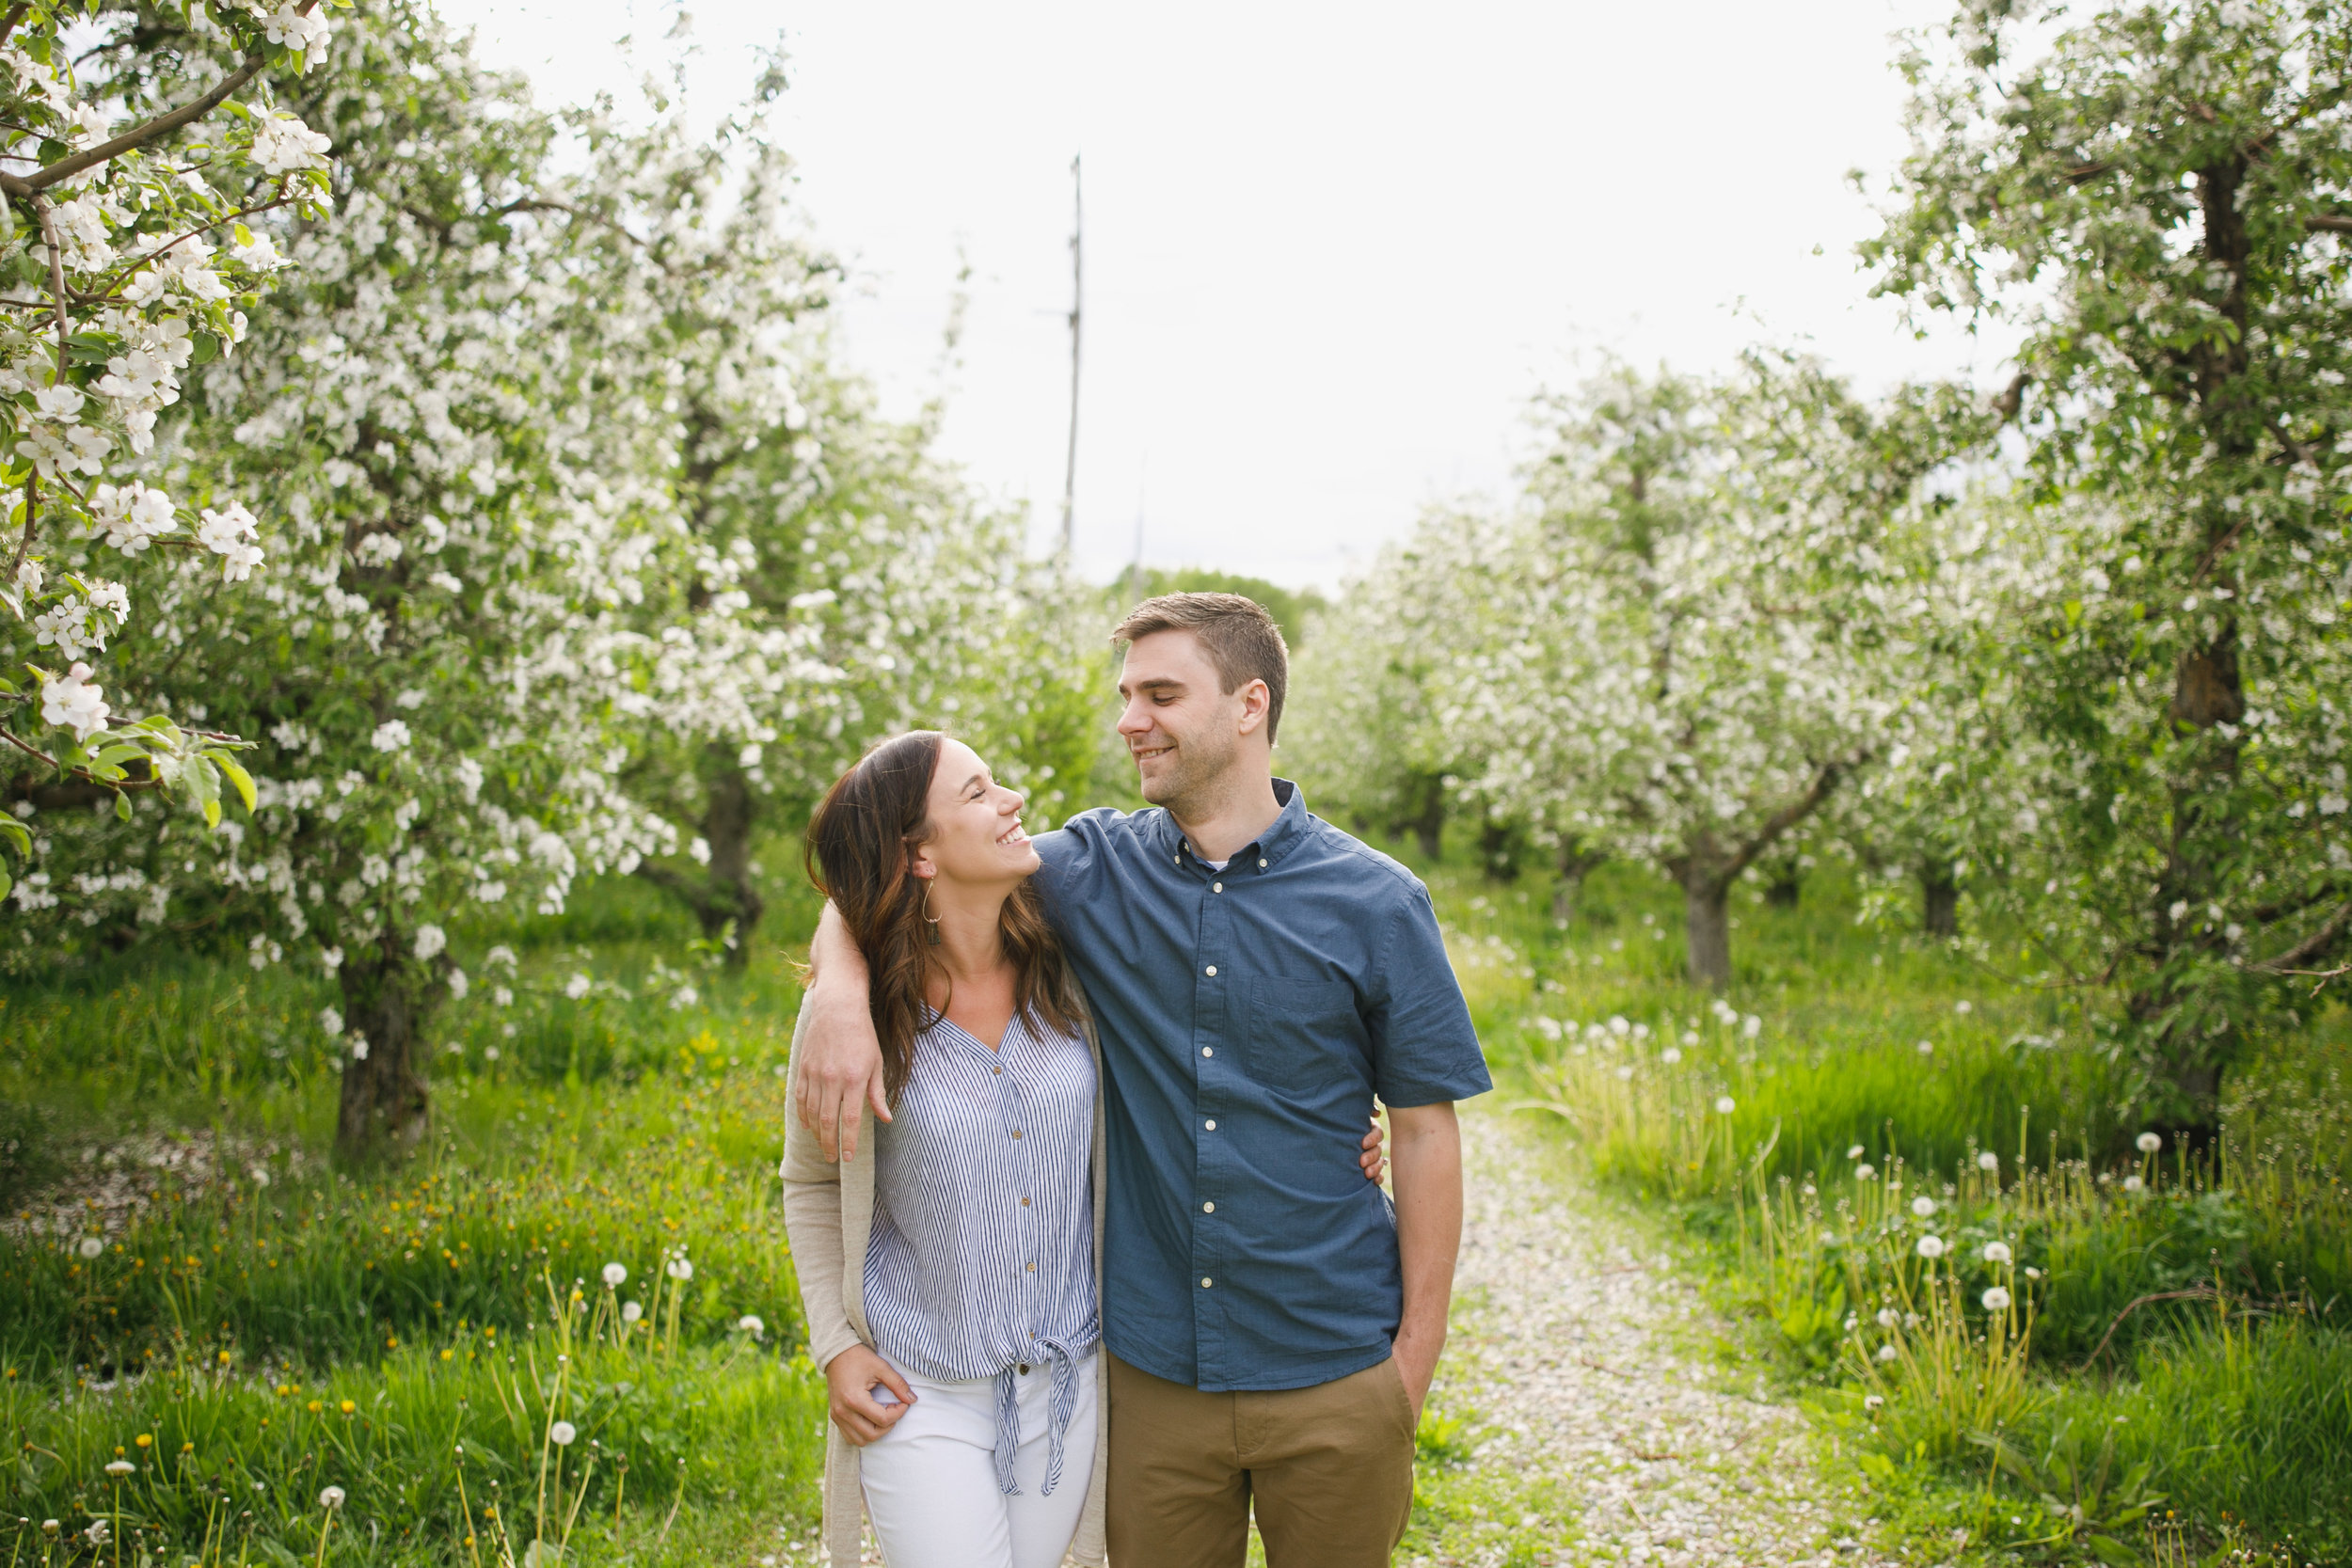 Grand Rapids Photographer - grand rapids wedding photographer - brian and katie engaged - apple blossoms - engagement session - jessica darling - sparta michigan - michigan wedding photographer- J Darling Photo001.jpg